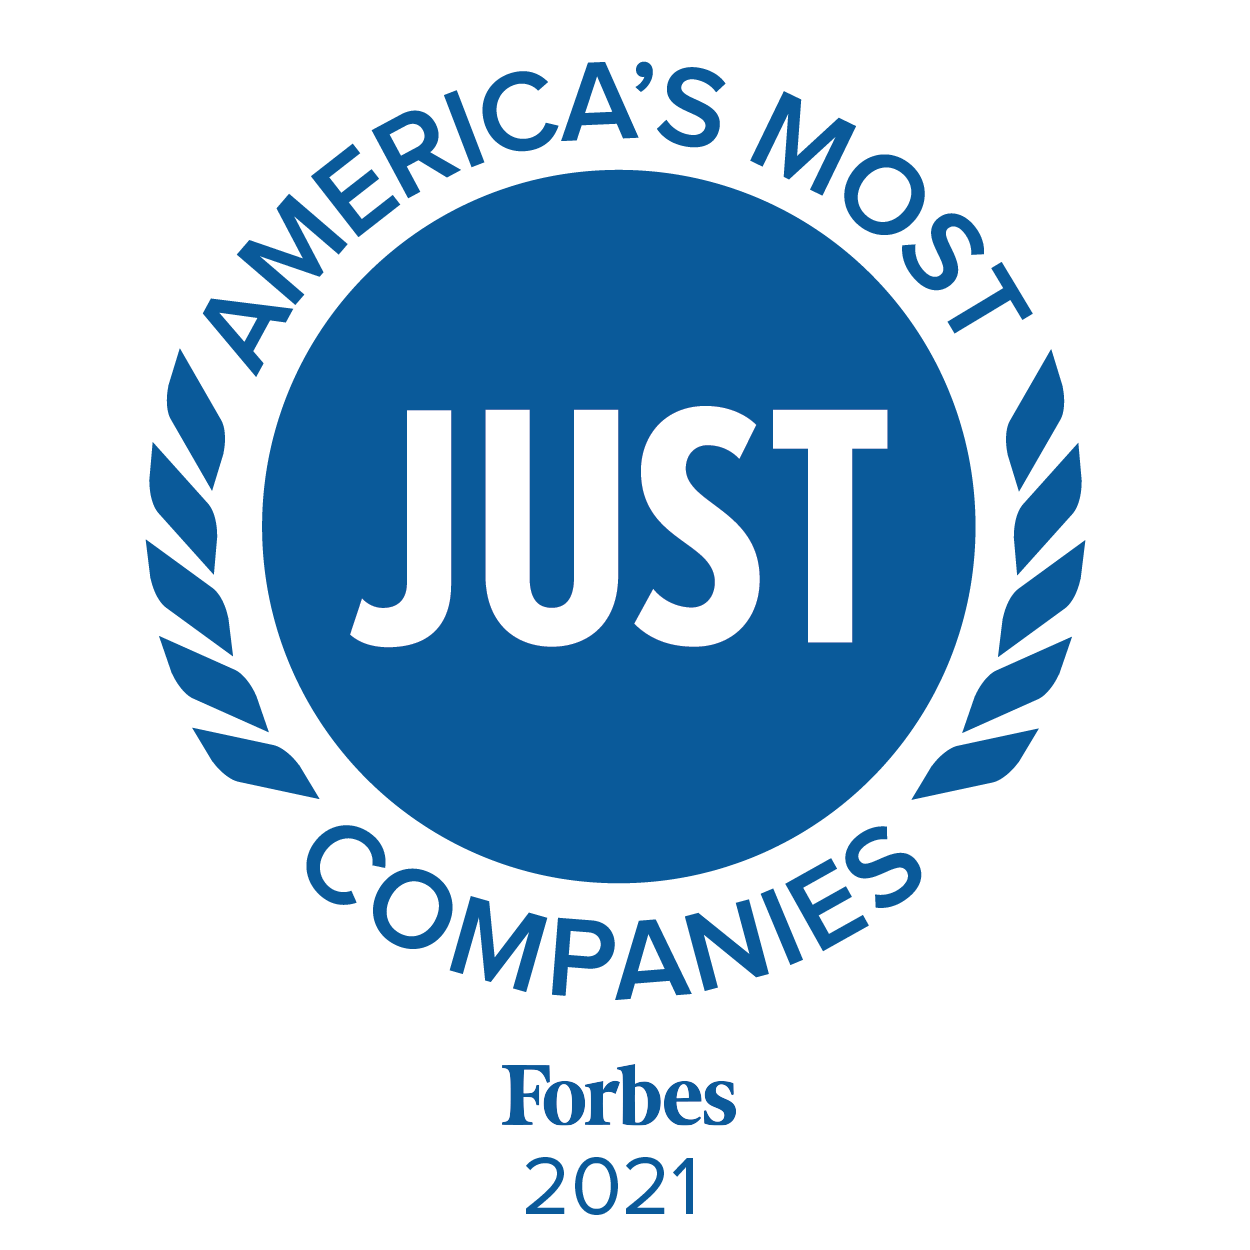 America's Most Just Companies, Forbes, 2021